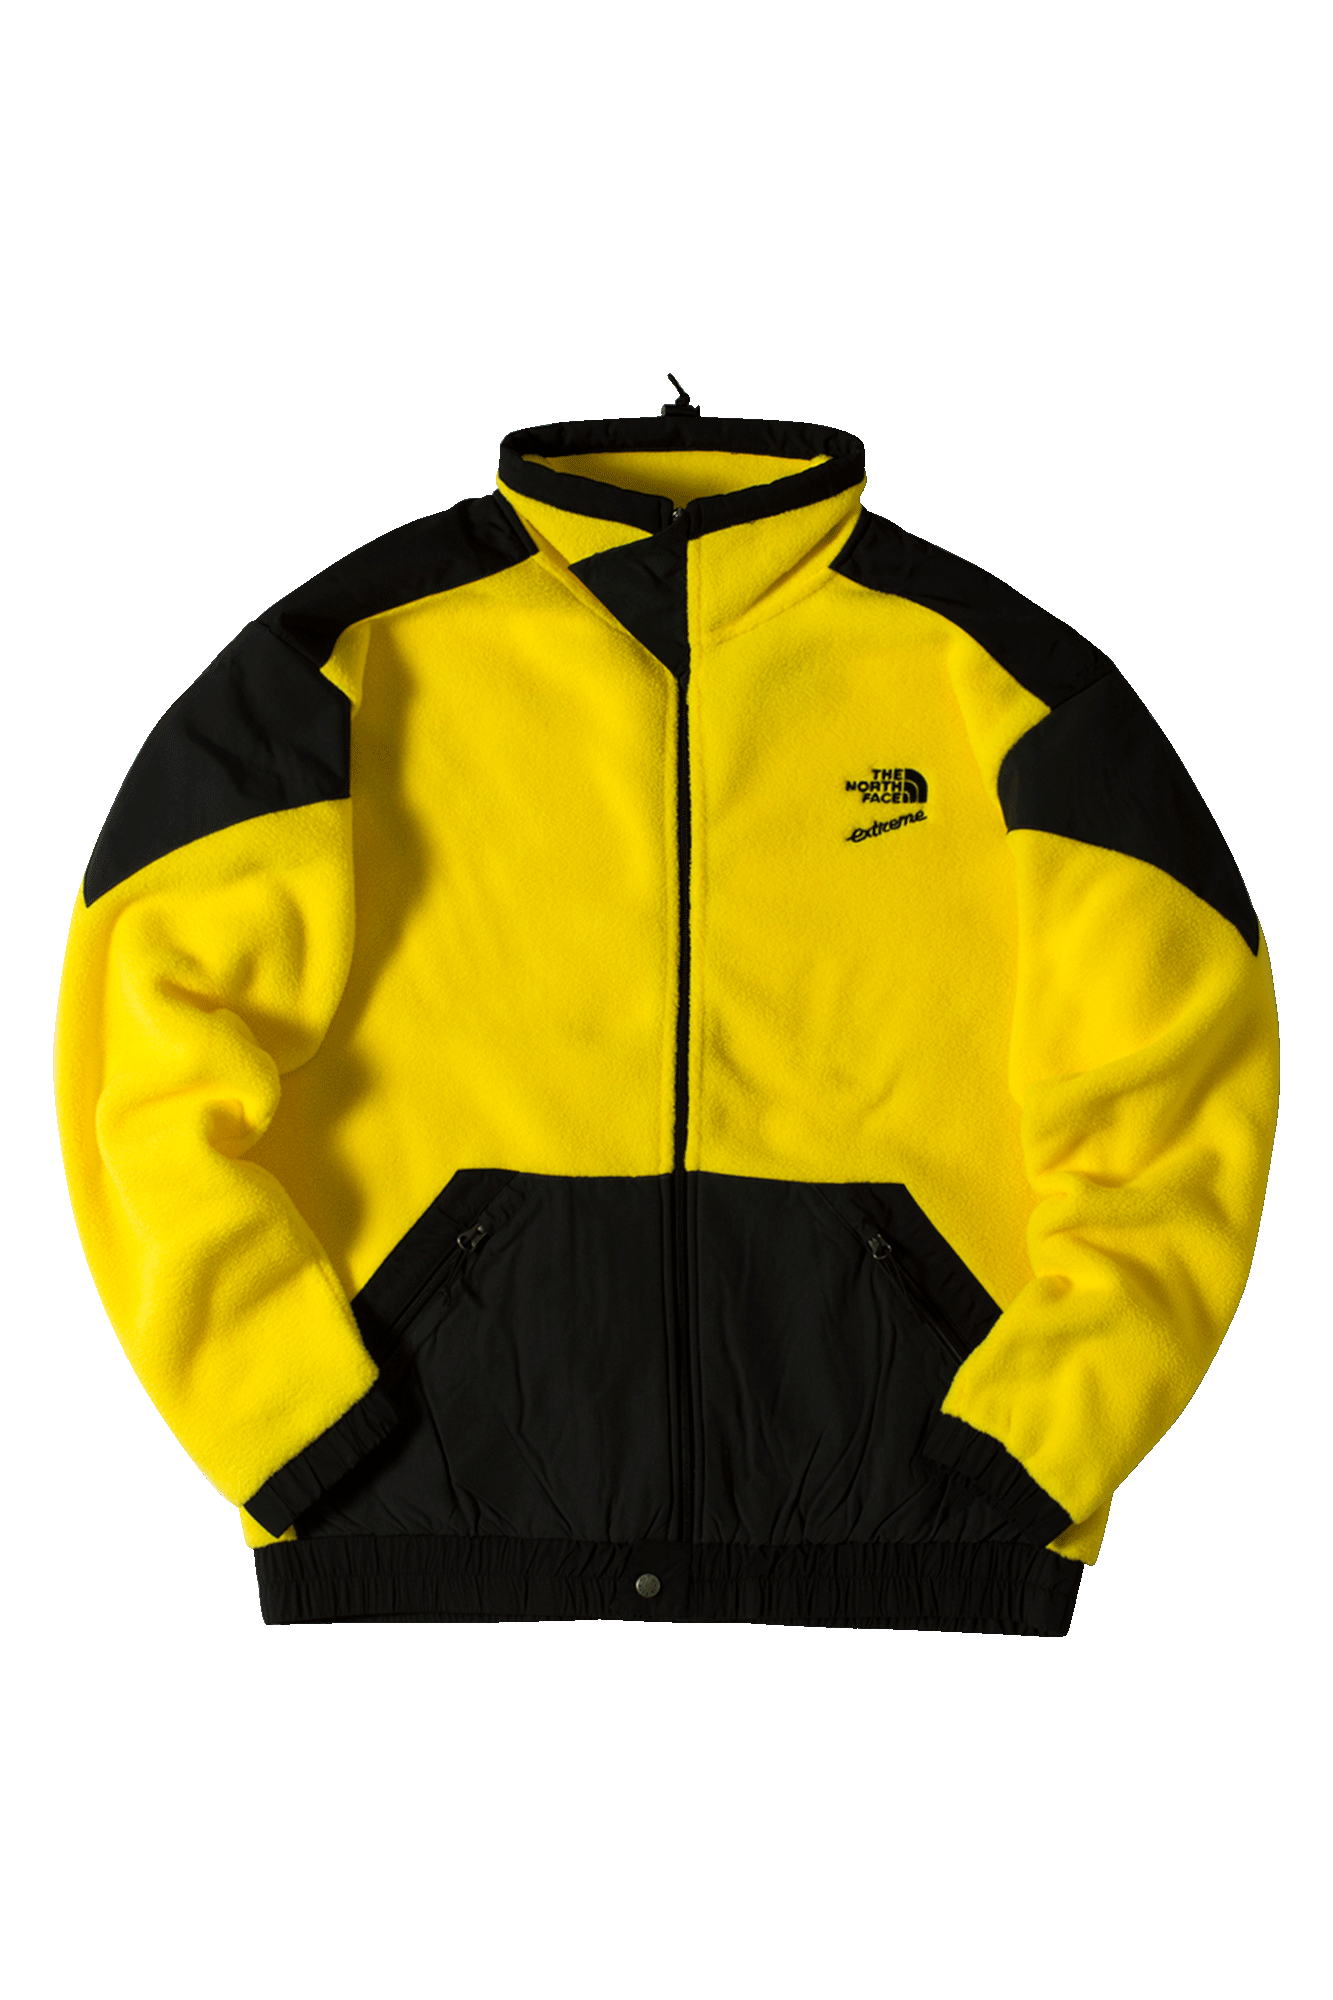 90 Extreme Fleece FZ Zip-Up Sweatshirt Yellow